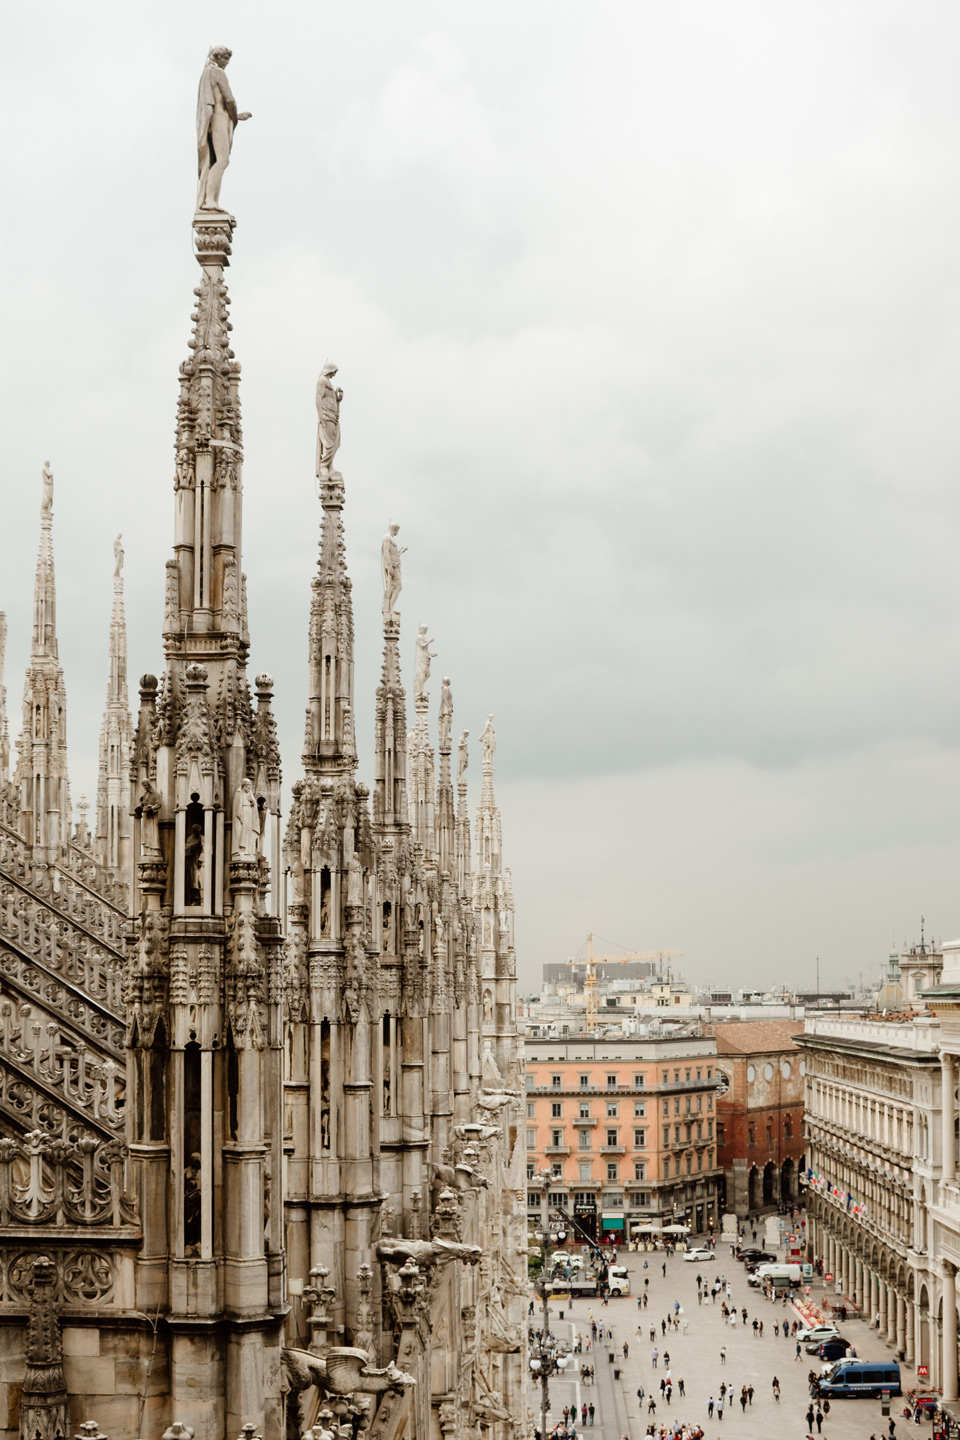 Milan, the roof of the Duomo di Milano cathedral